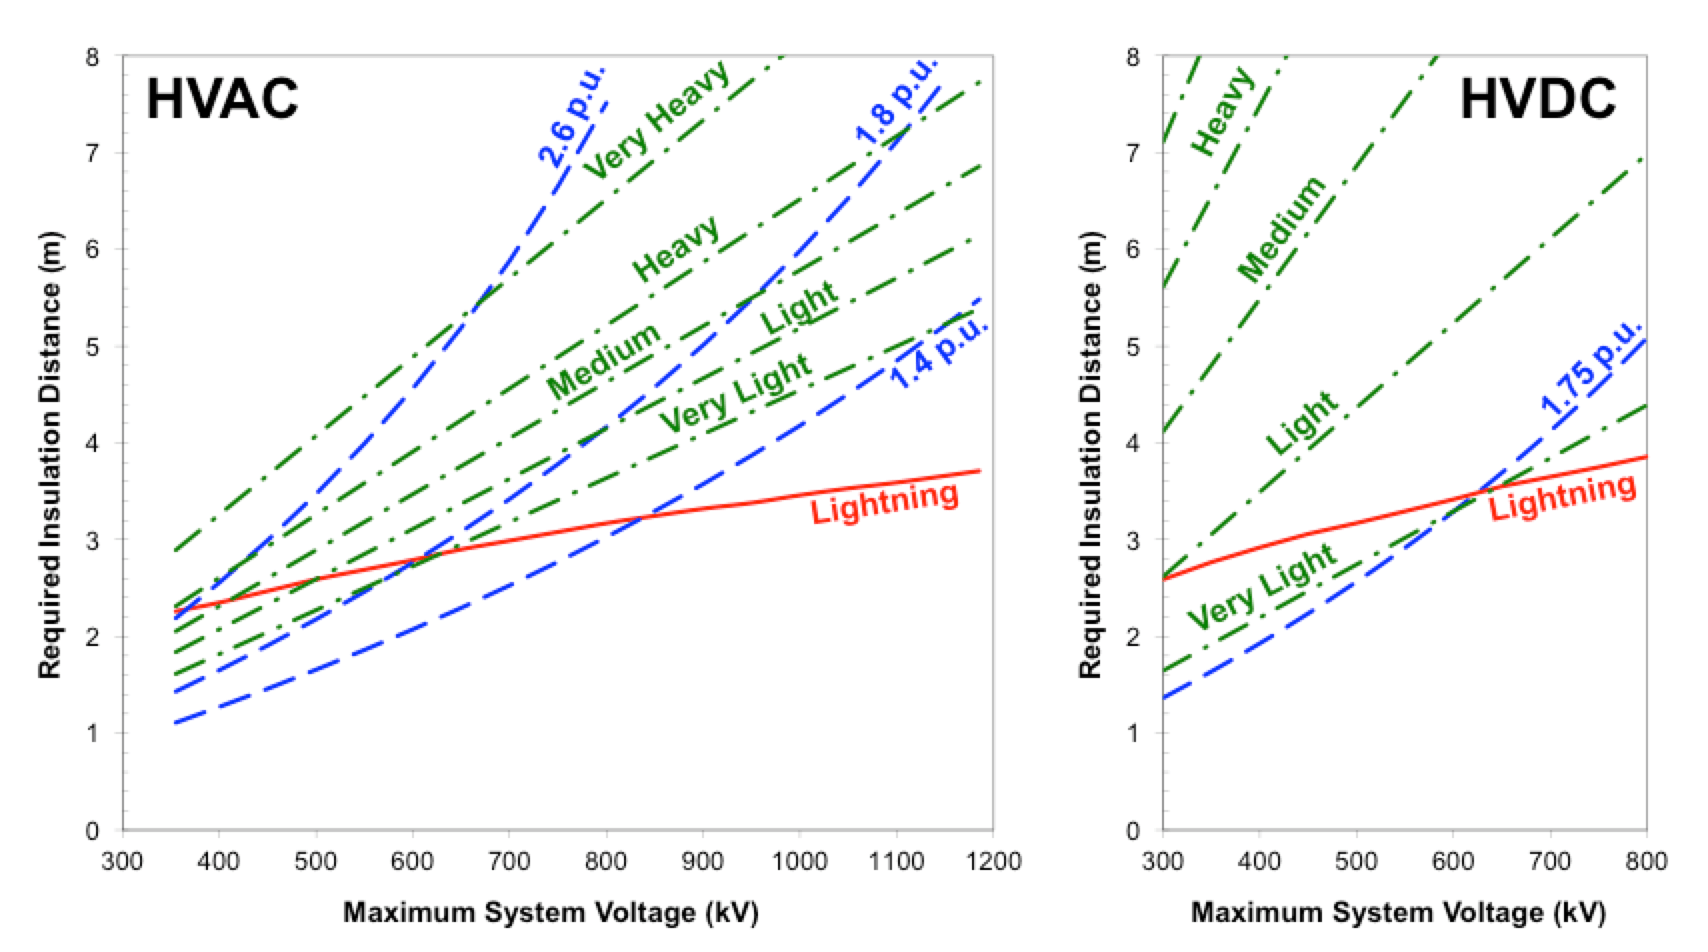 Fig. 2: Comparison of indicative insulation distance requirements (glass and porcelain) for switching (blue) lightning (red) and pollution (green) for HVAC and HVDC systems. dc insulation Principles for Selection of DC Insulation Comparison of indicative insulation distance requirements glass and porcelain for switching blue lightning red and pollution for HVAC and HVDC systems